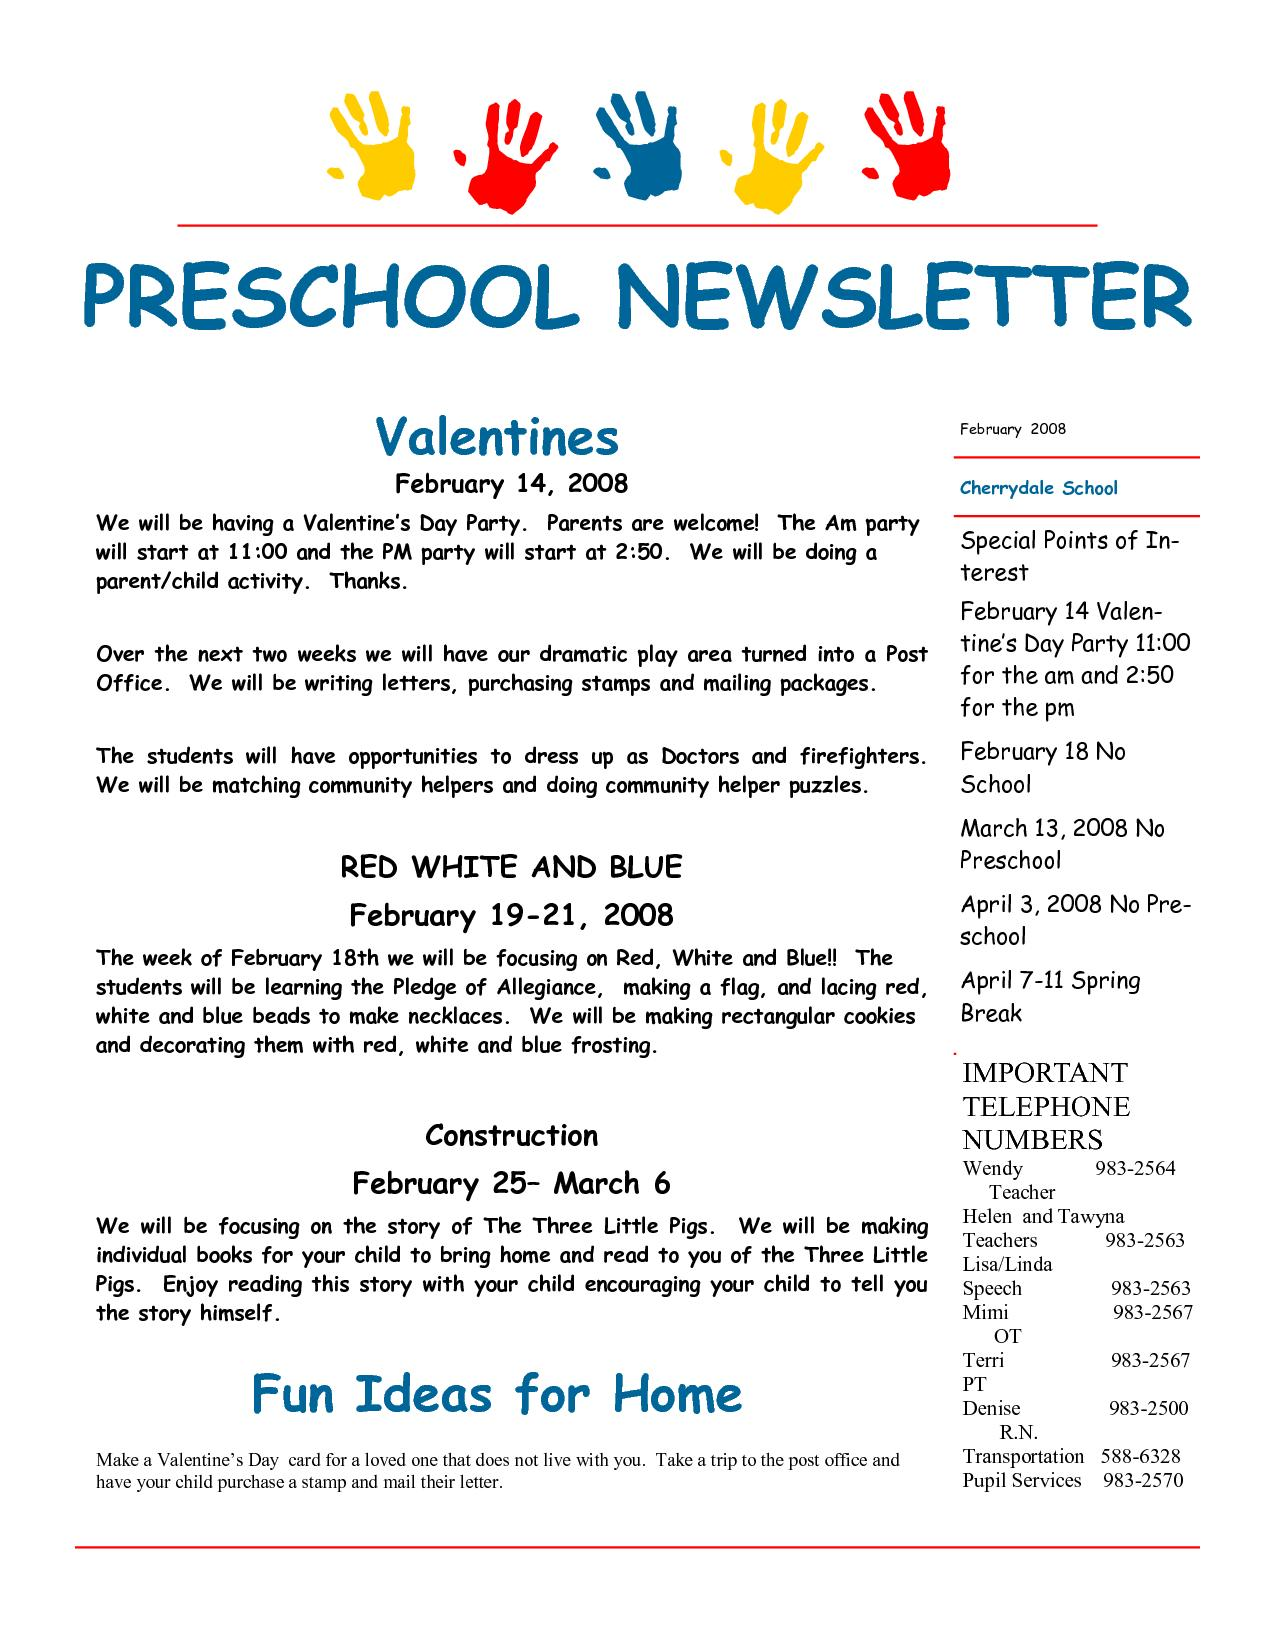 February Newsletter Template For Preschool